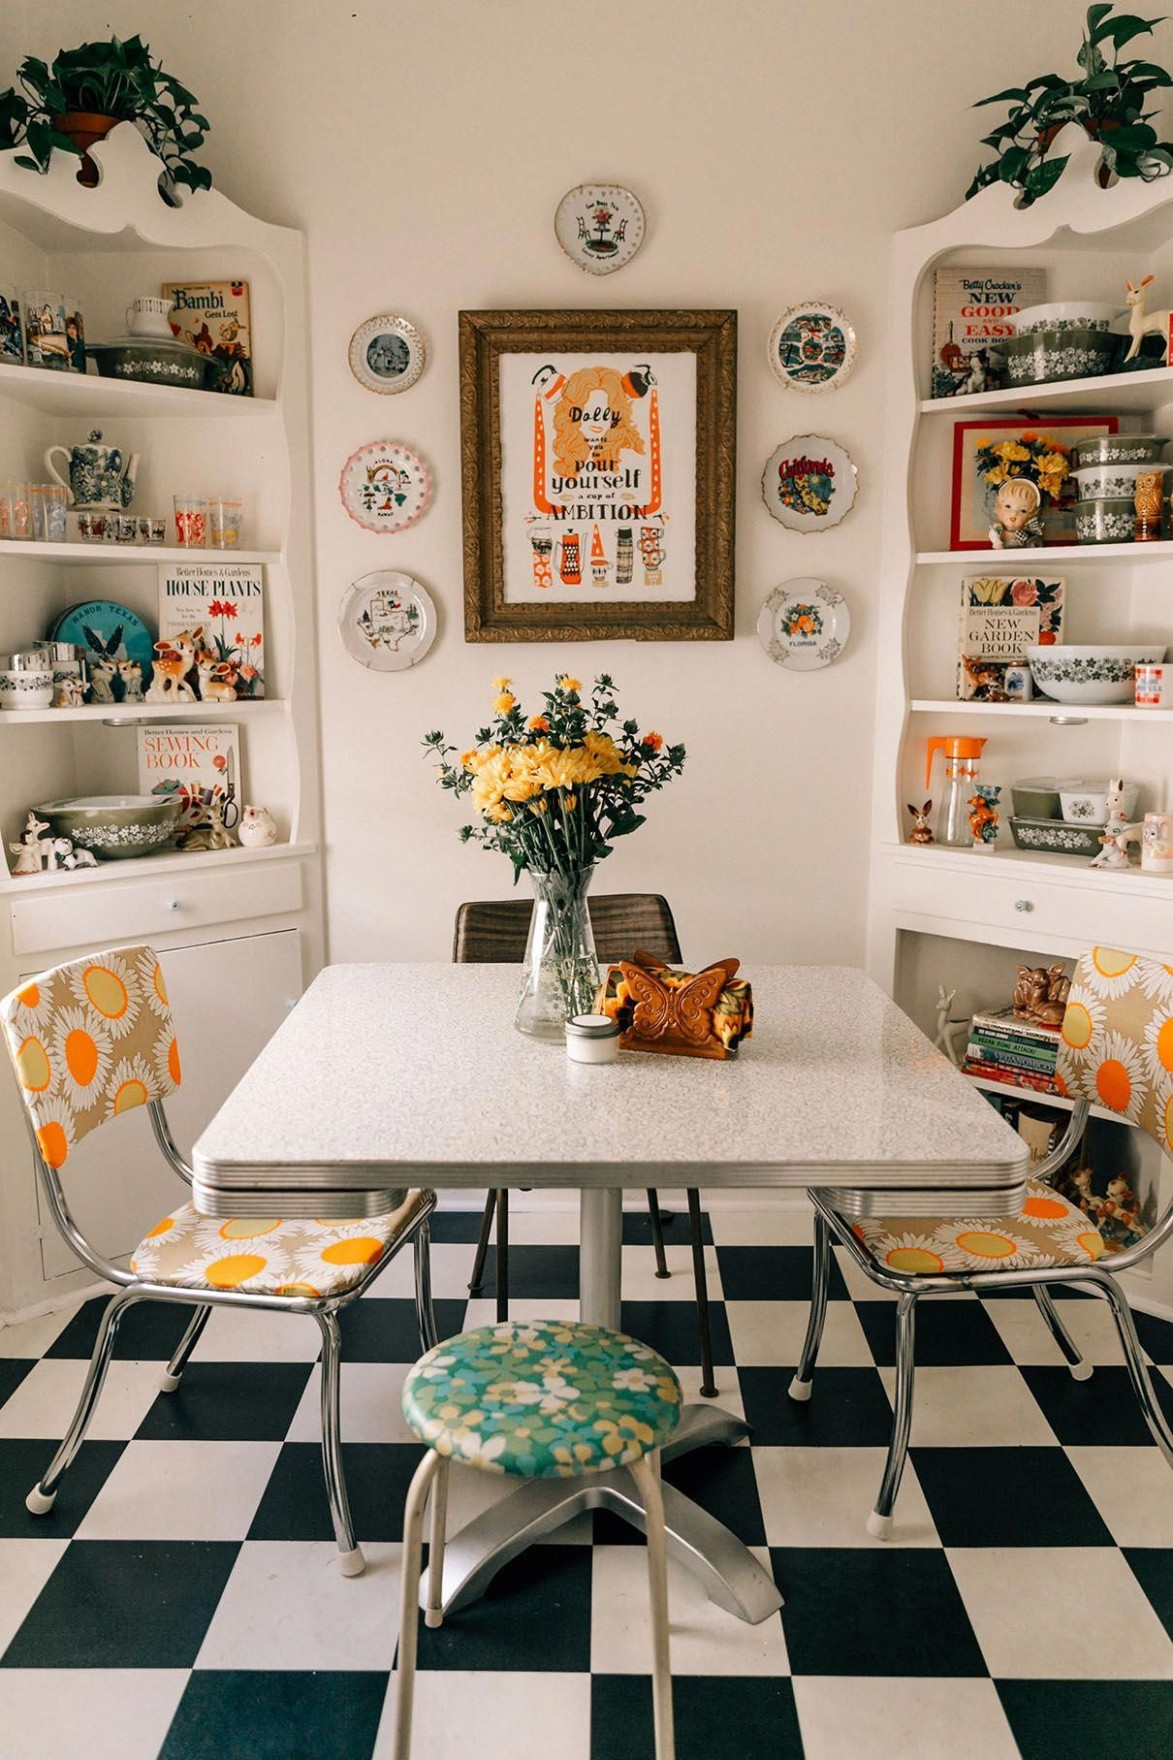 Retro Dining Rooms: Take a look at this dazzling dining room  - Dining Room Ideas Retro